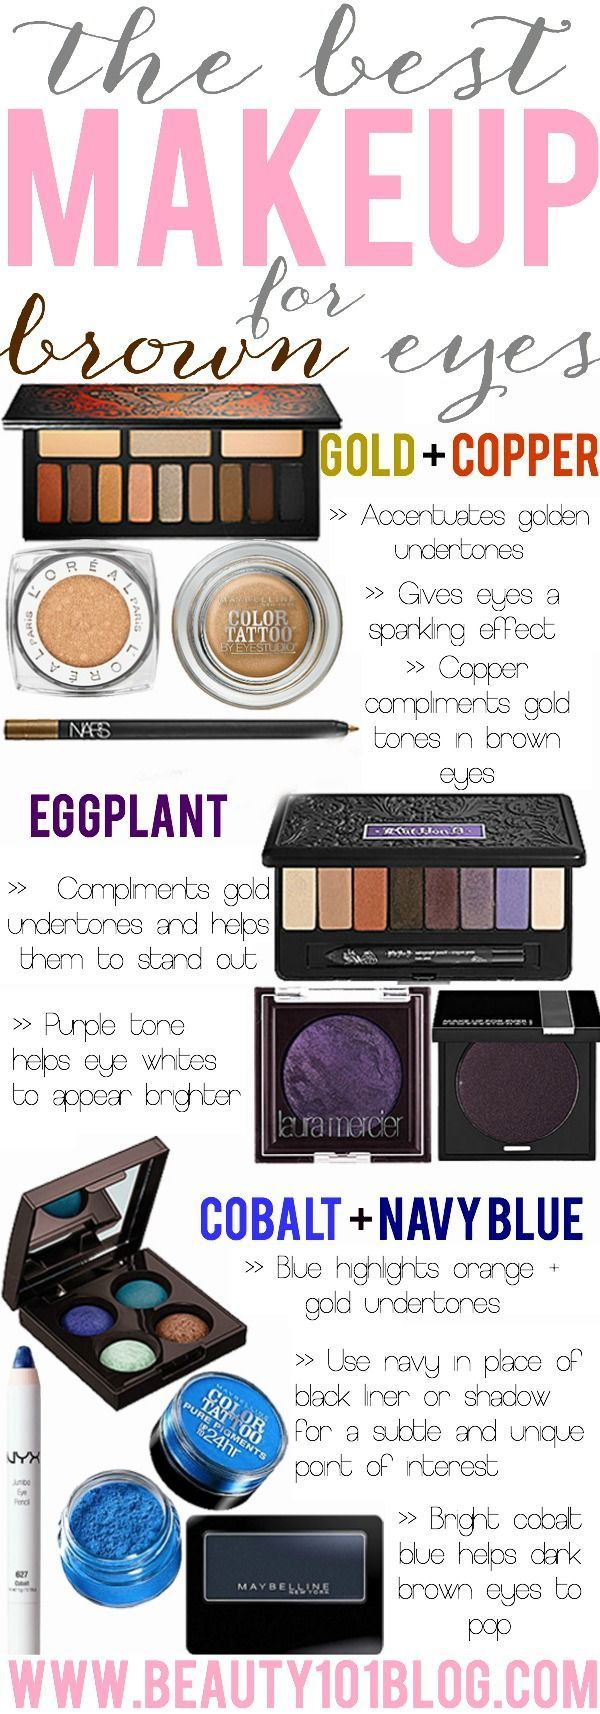 The Best Makeup for Brown Eyes - Beauty 101 Blog #forbrowneyes